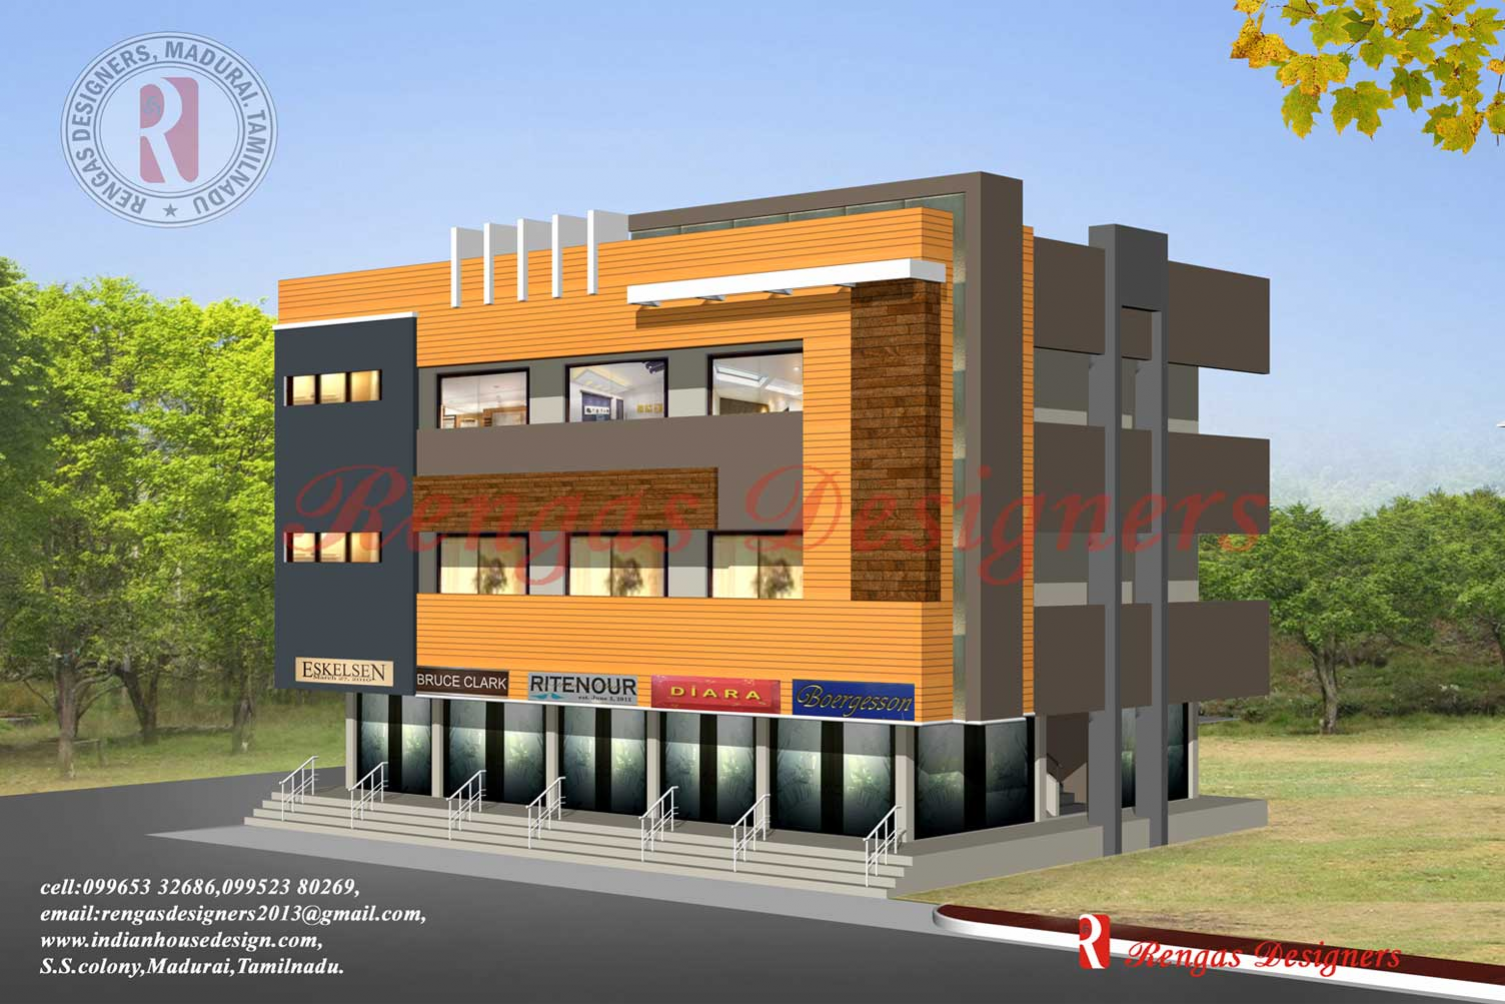 Emejing commercial building design ideas images amazing for Commercial building plans